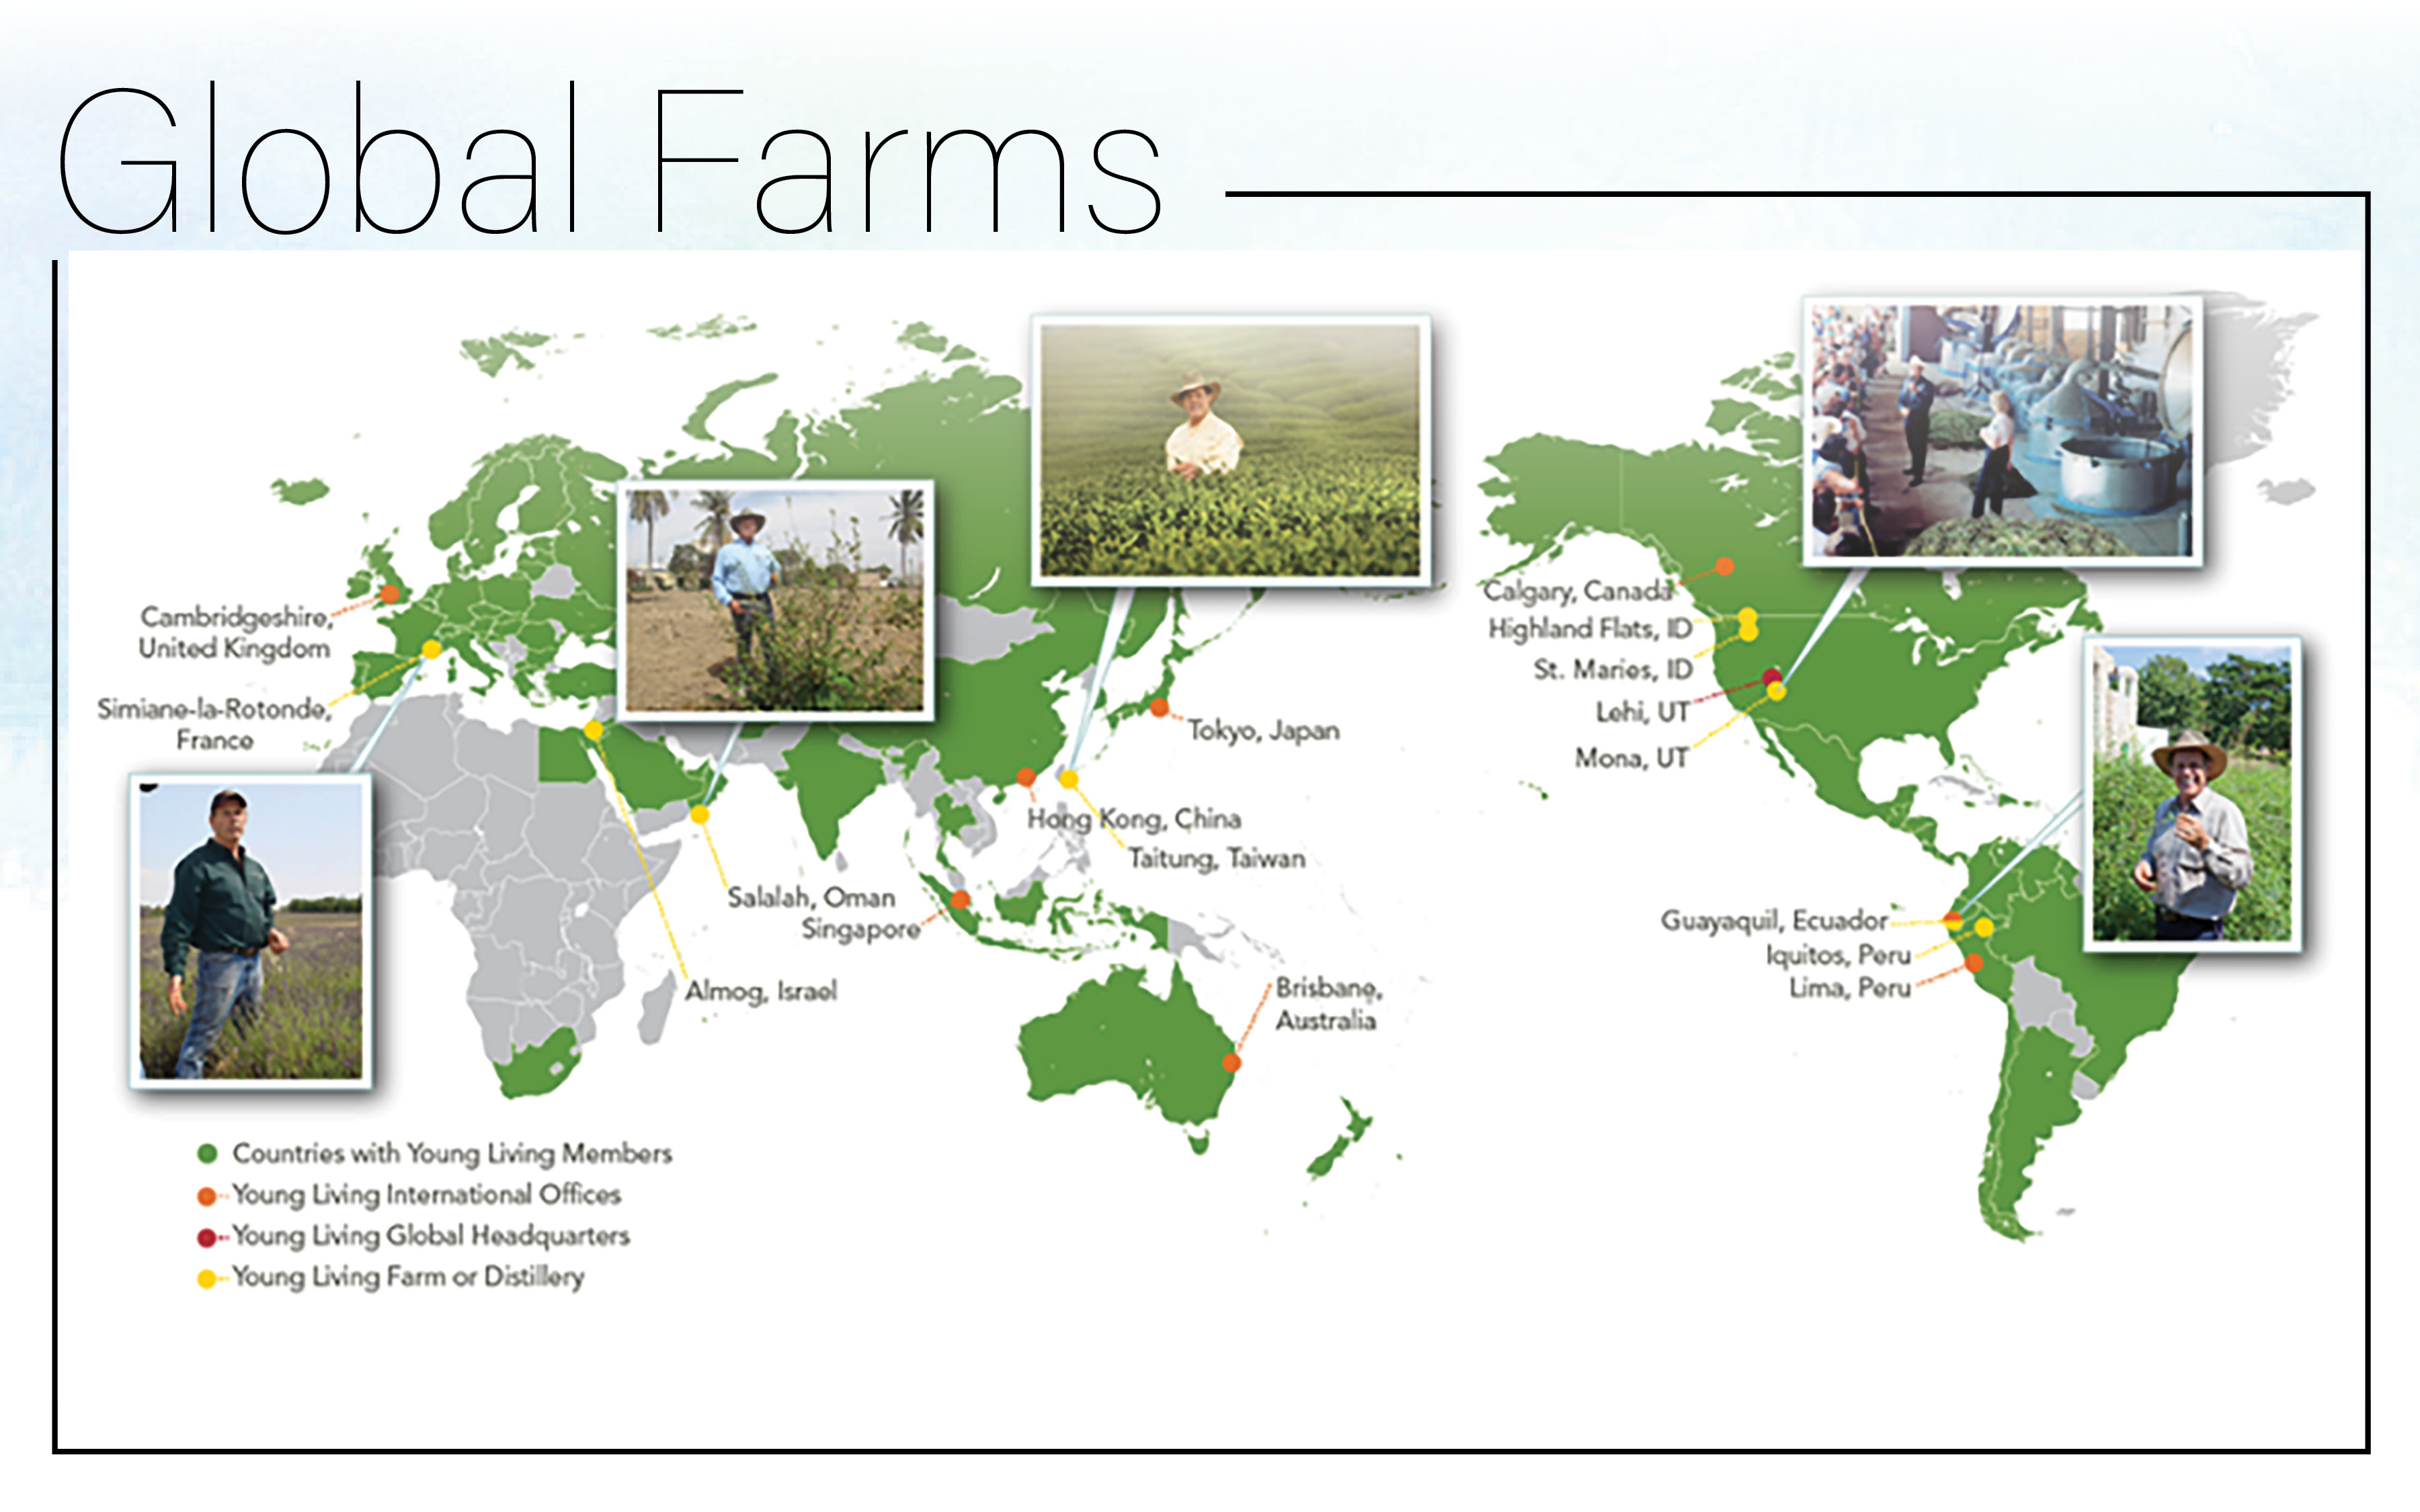 Young living farms are everywhere